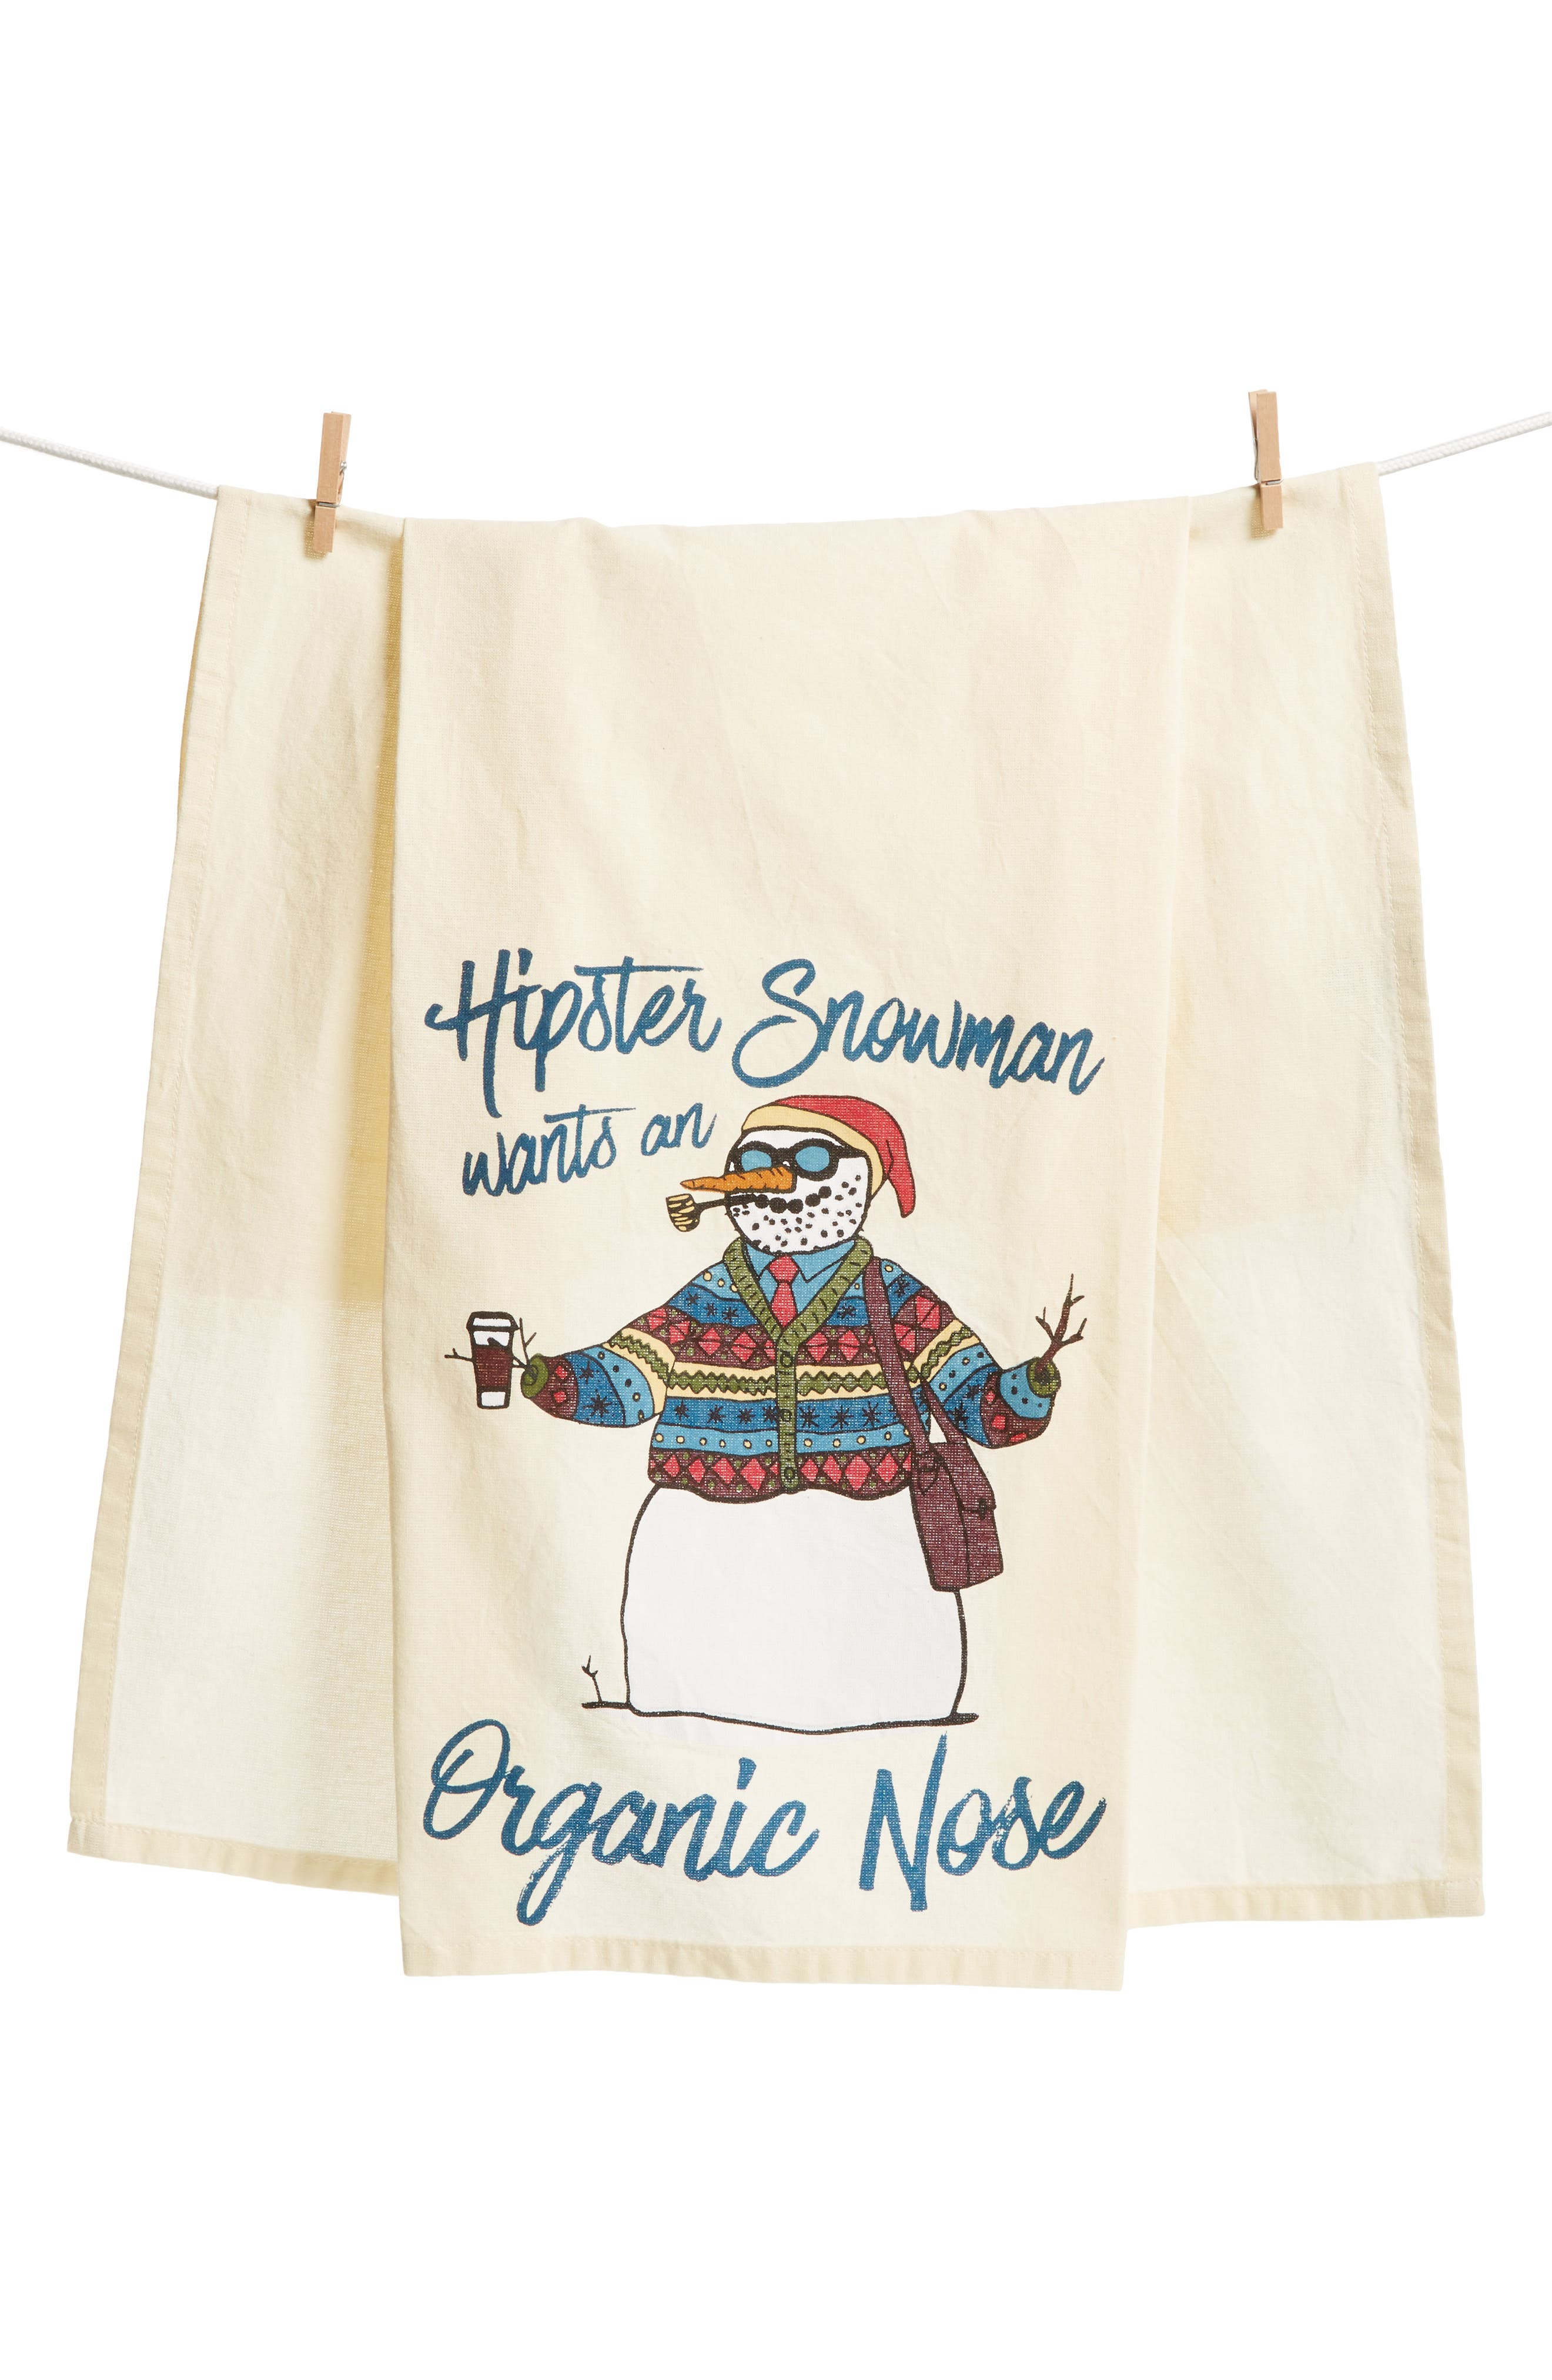 Hipster Snowman Dish Towel,                             Alternate thumbnail 2, color,                             400